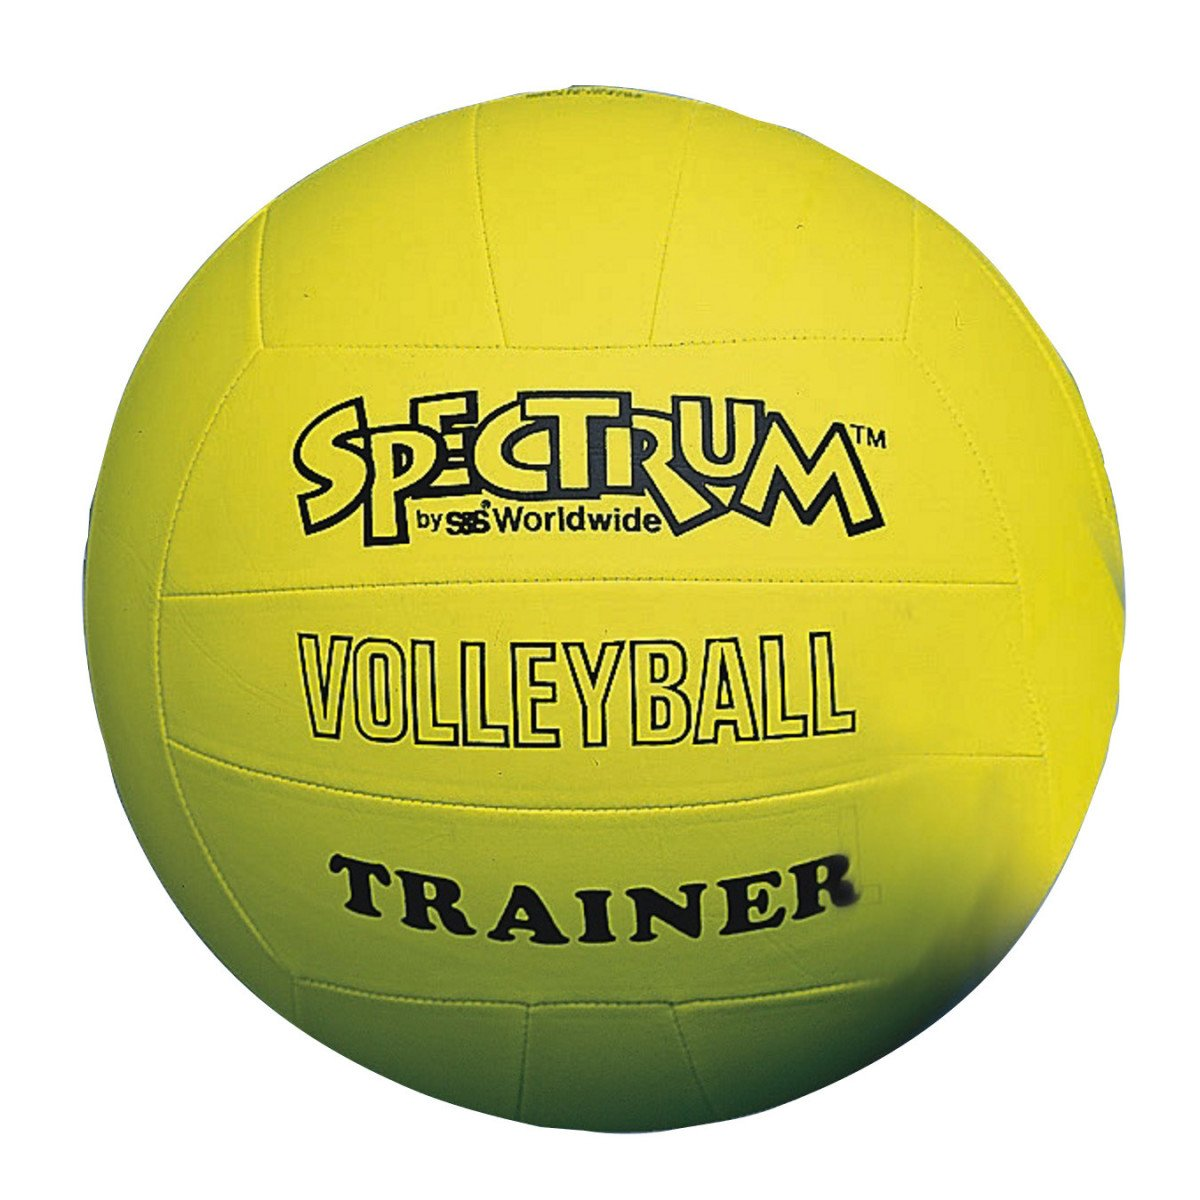 S&S Worldwide Spectrum Volleyball Trainer, Yellow - Oversize